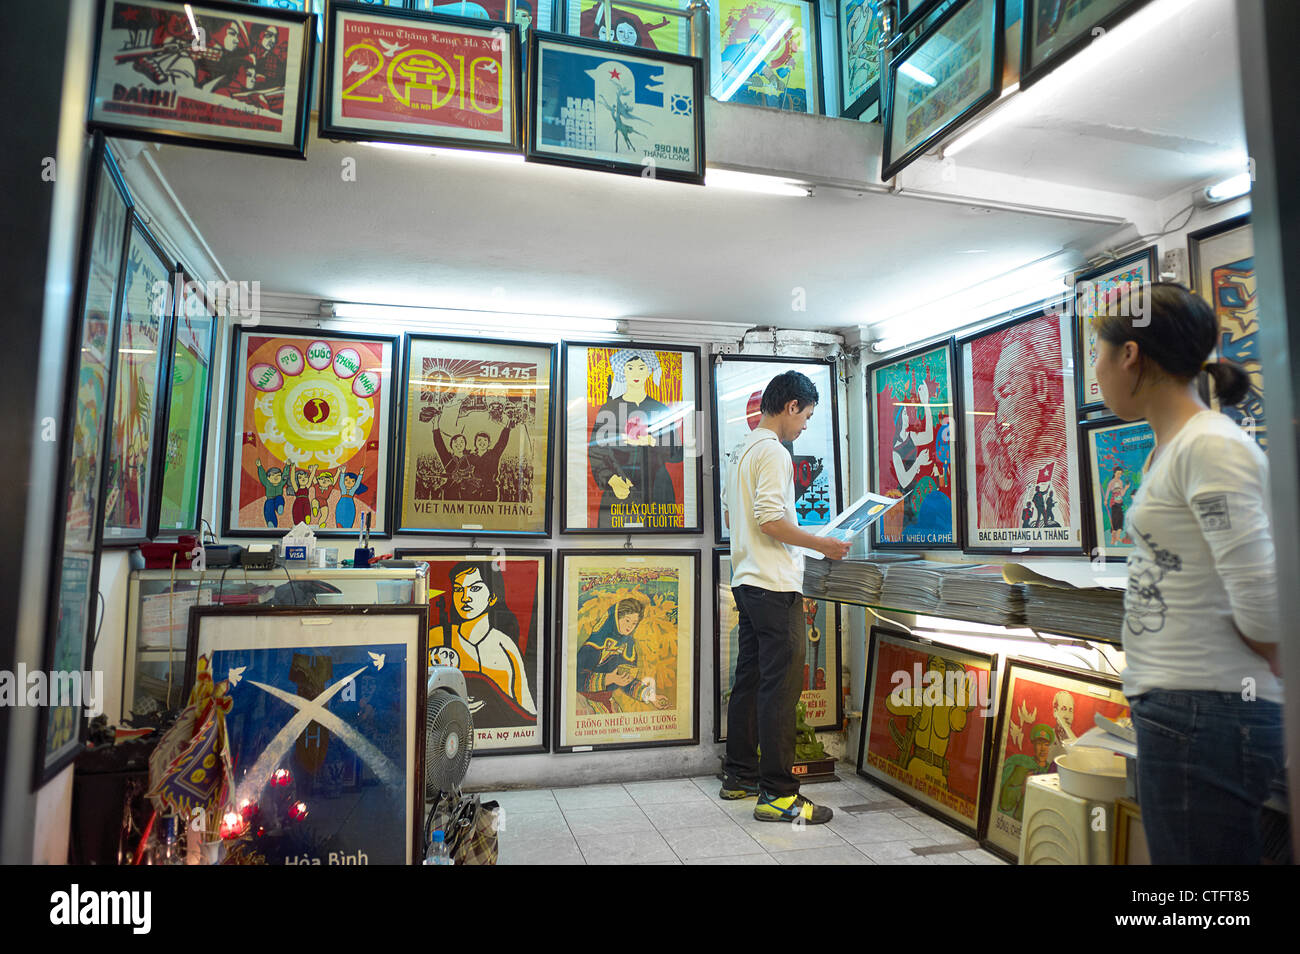 A two-story propaganda poster shop in Vietnam with people browsing through the posters. - Stock Image